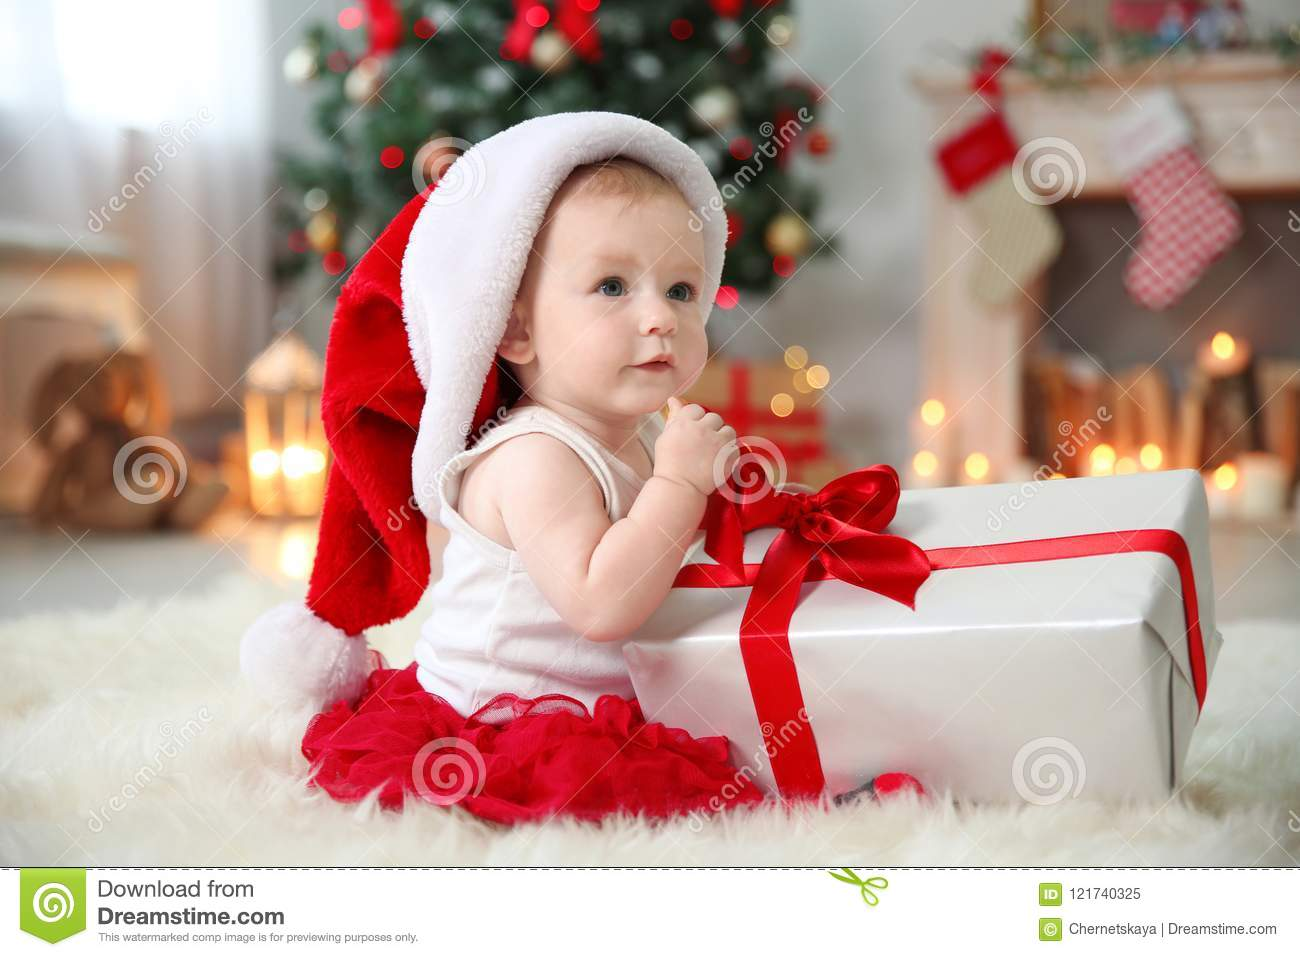 Cute baby in santa hat opening gift box at home